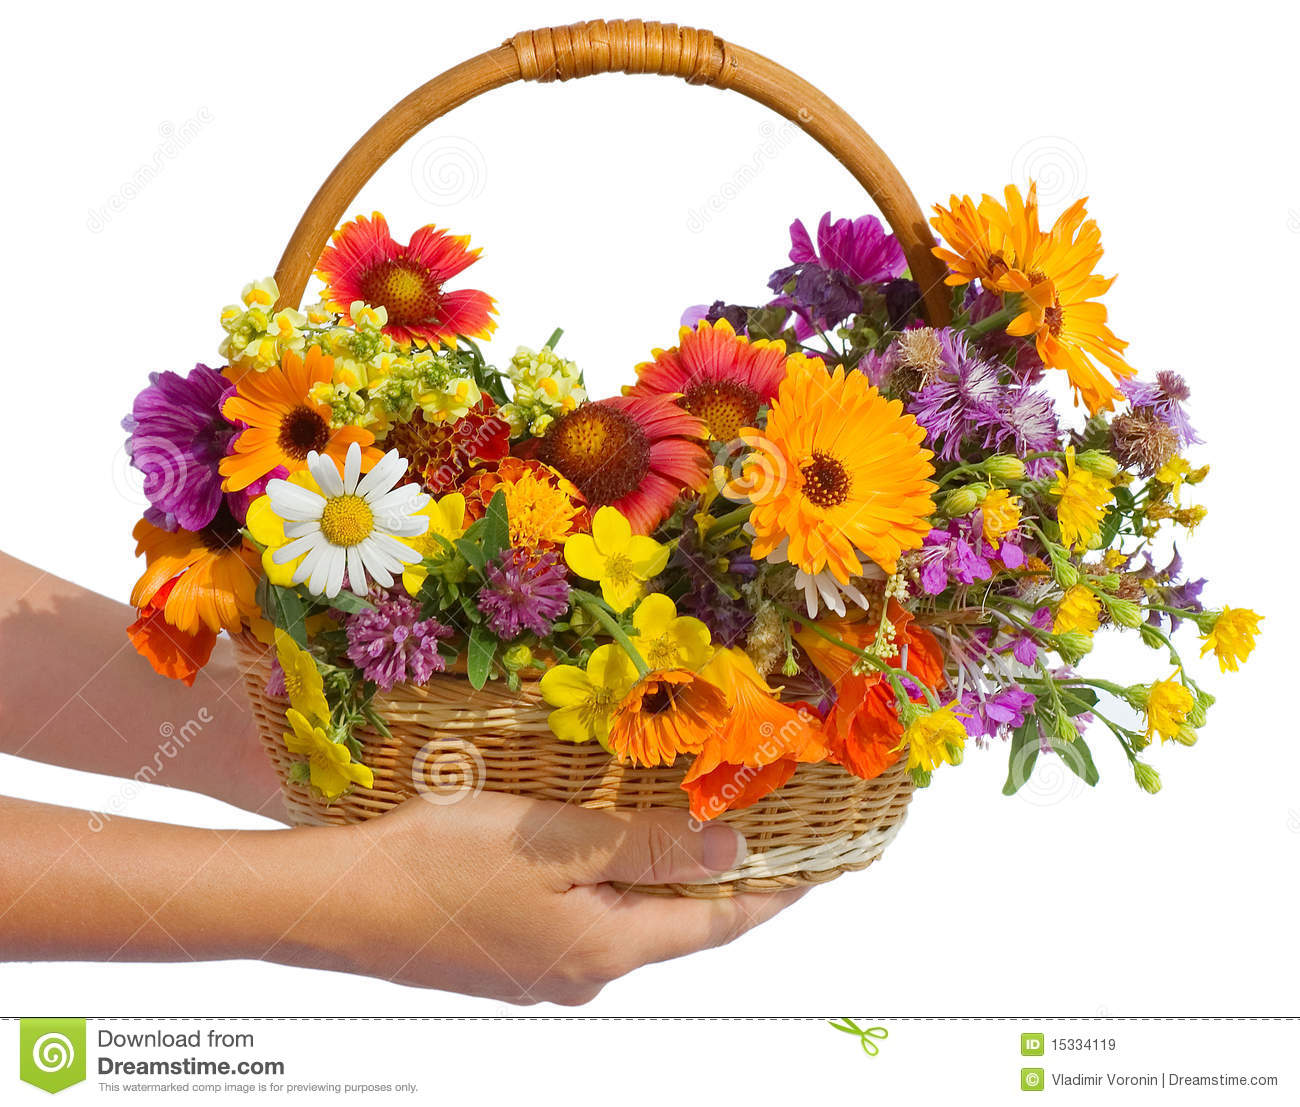 Beautiful flowers in a basket stock image image of isolated hand download beautiful flowers in a basket stock image image of isolated hand 15334119 izmirmasajfo